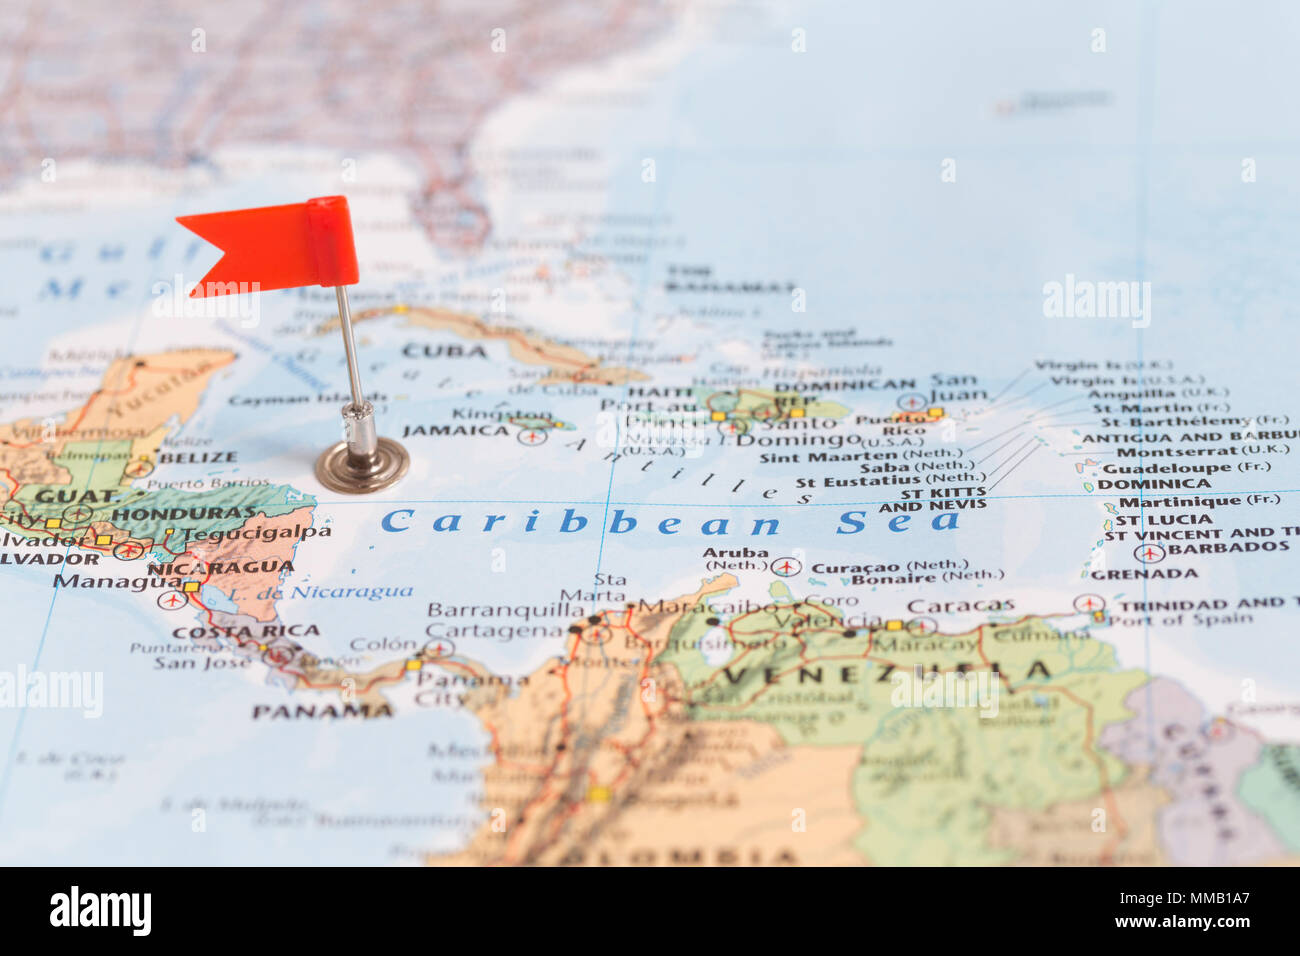 Red sea map stock photos red sea map stock images alamy small red flag marking the caribean sea on a world map stock image gumiabroncs Image collections